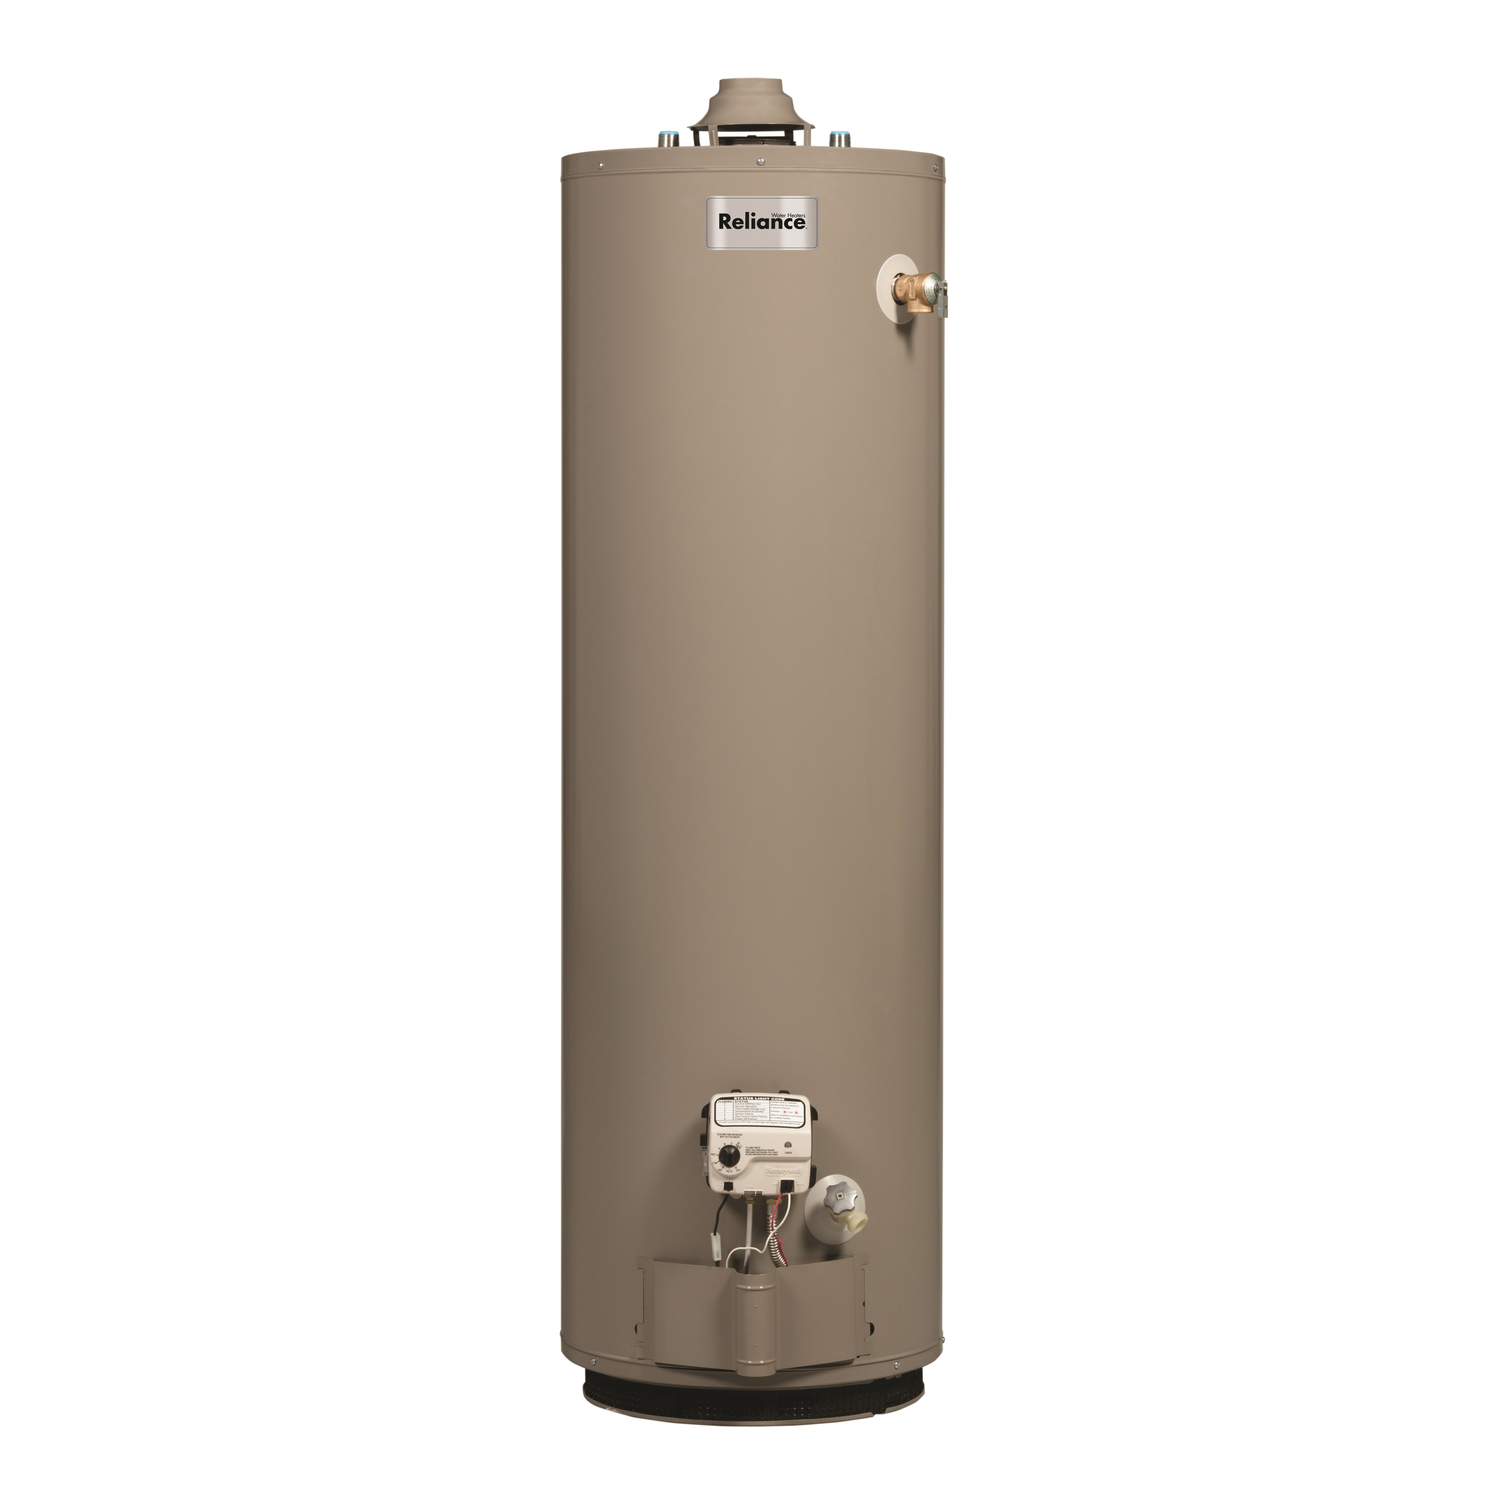 Reliance  Natural Gas  Water Heater  62 in. H x 20 in. W x 20 in. L 40 gal.